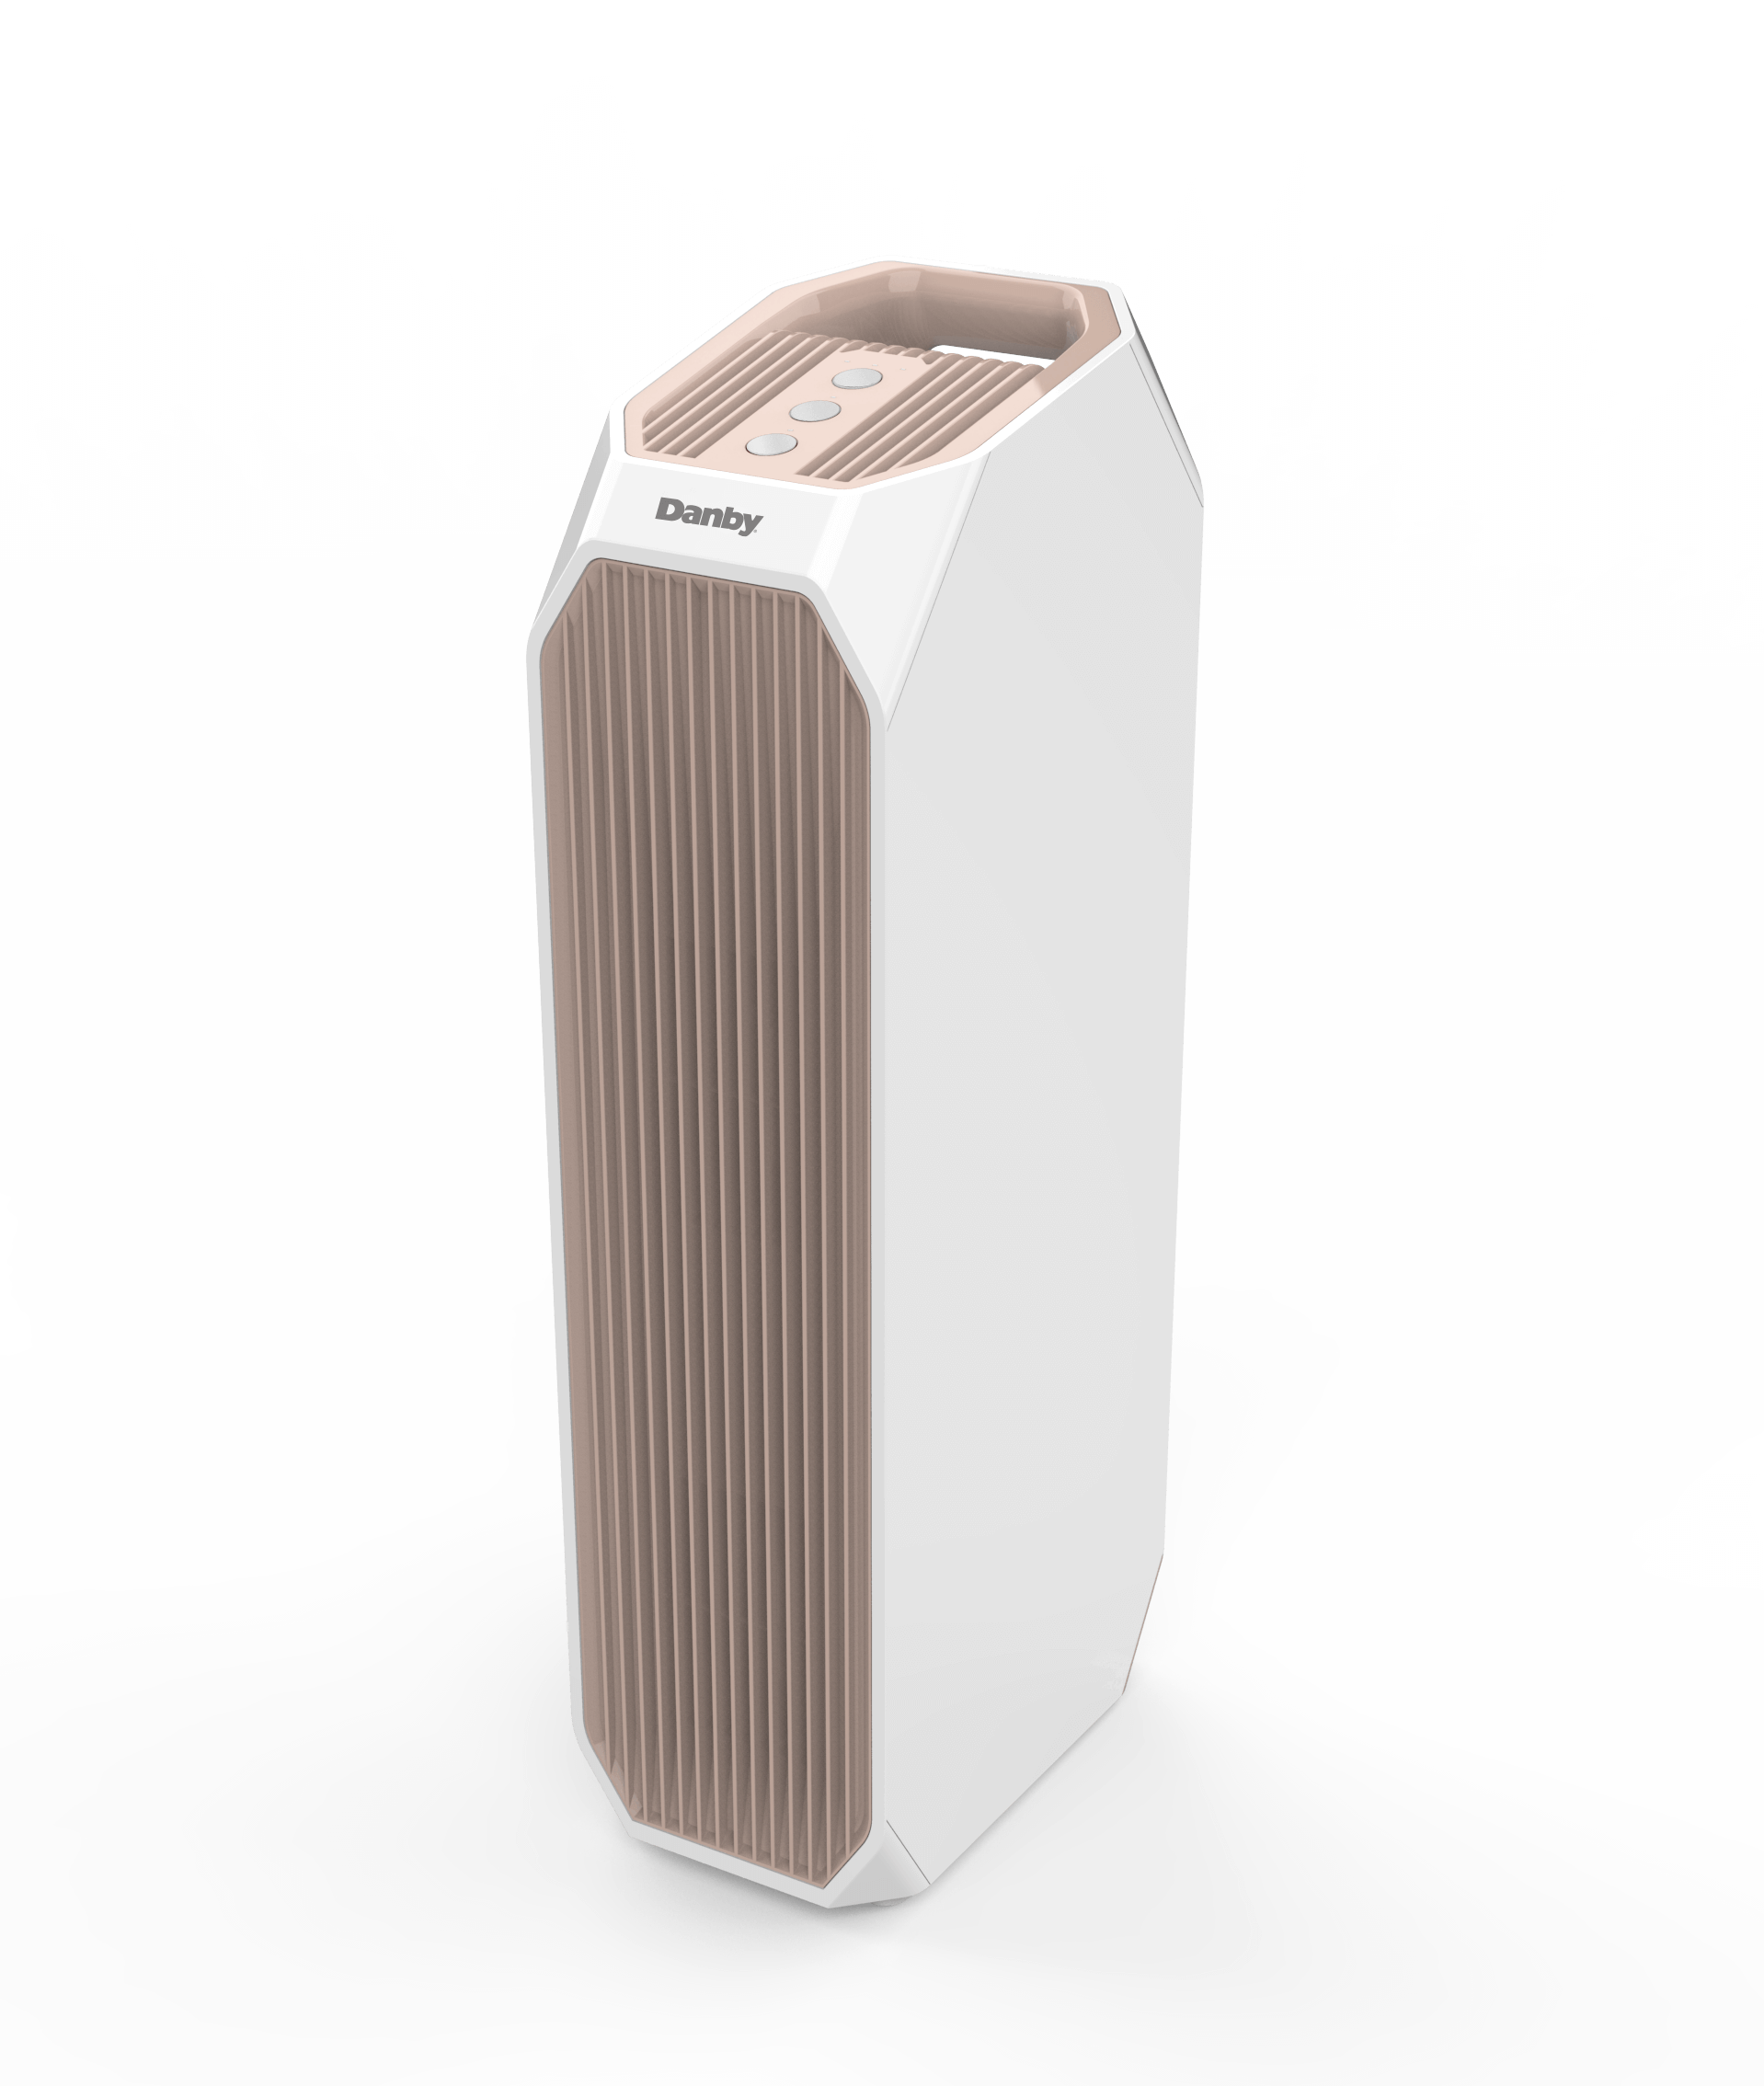 Danby Air Purifier up to 222 sq.ft